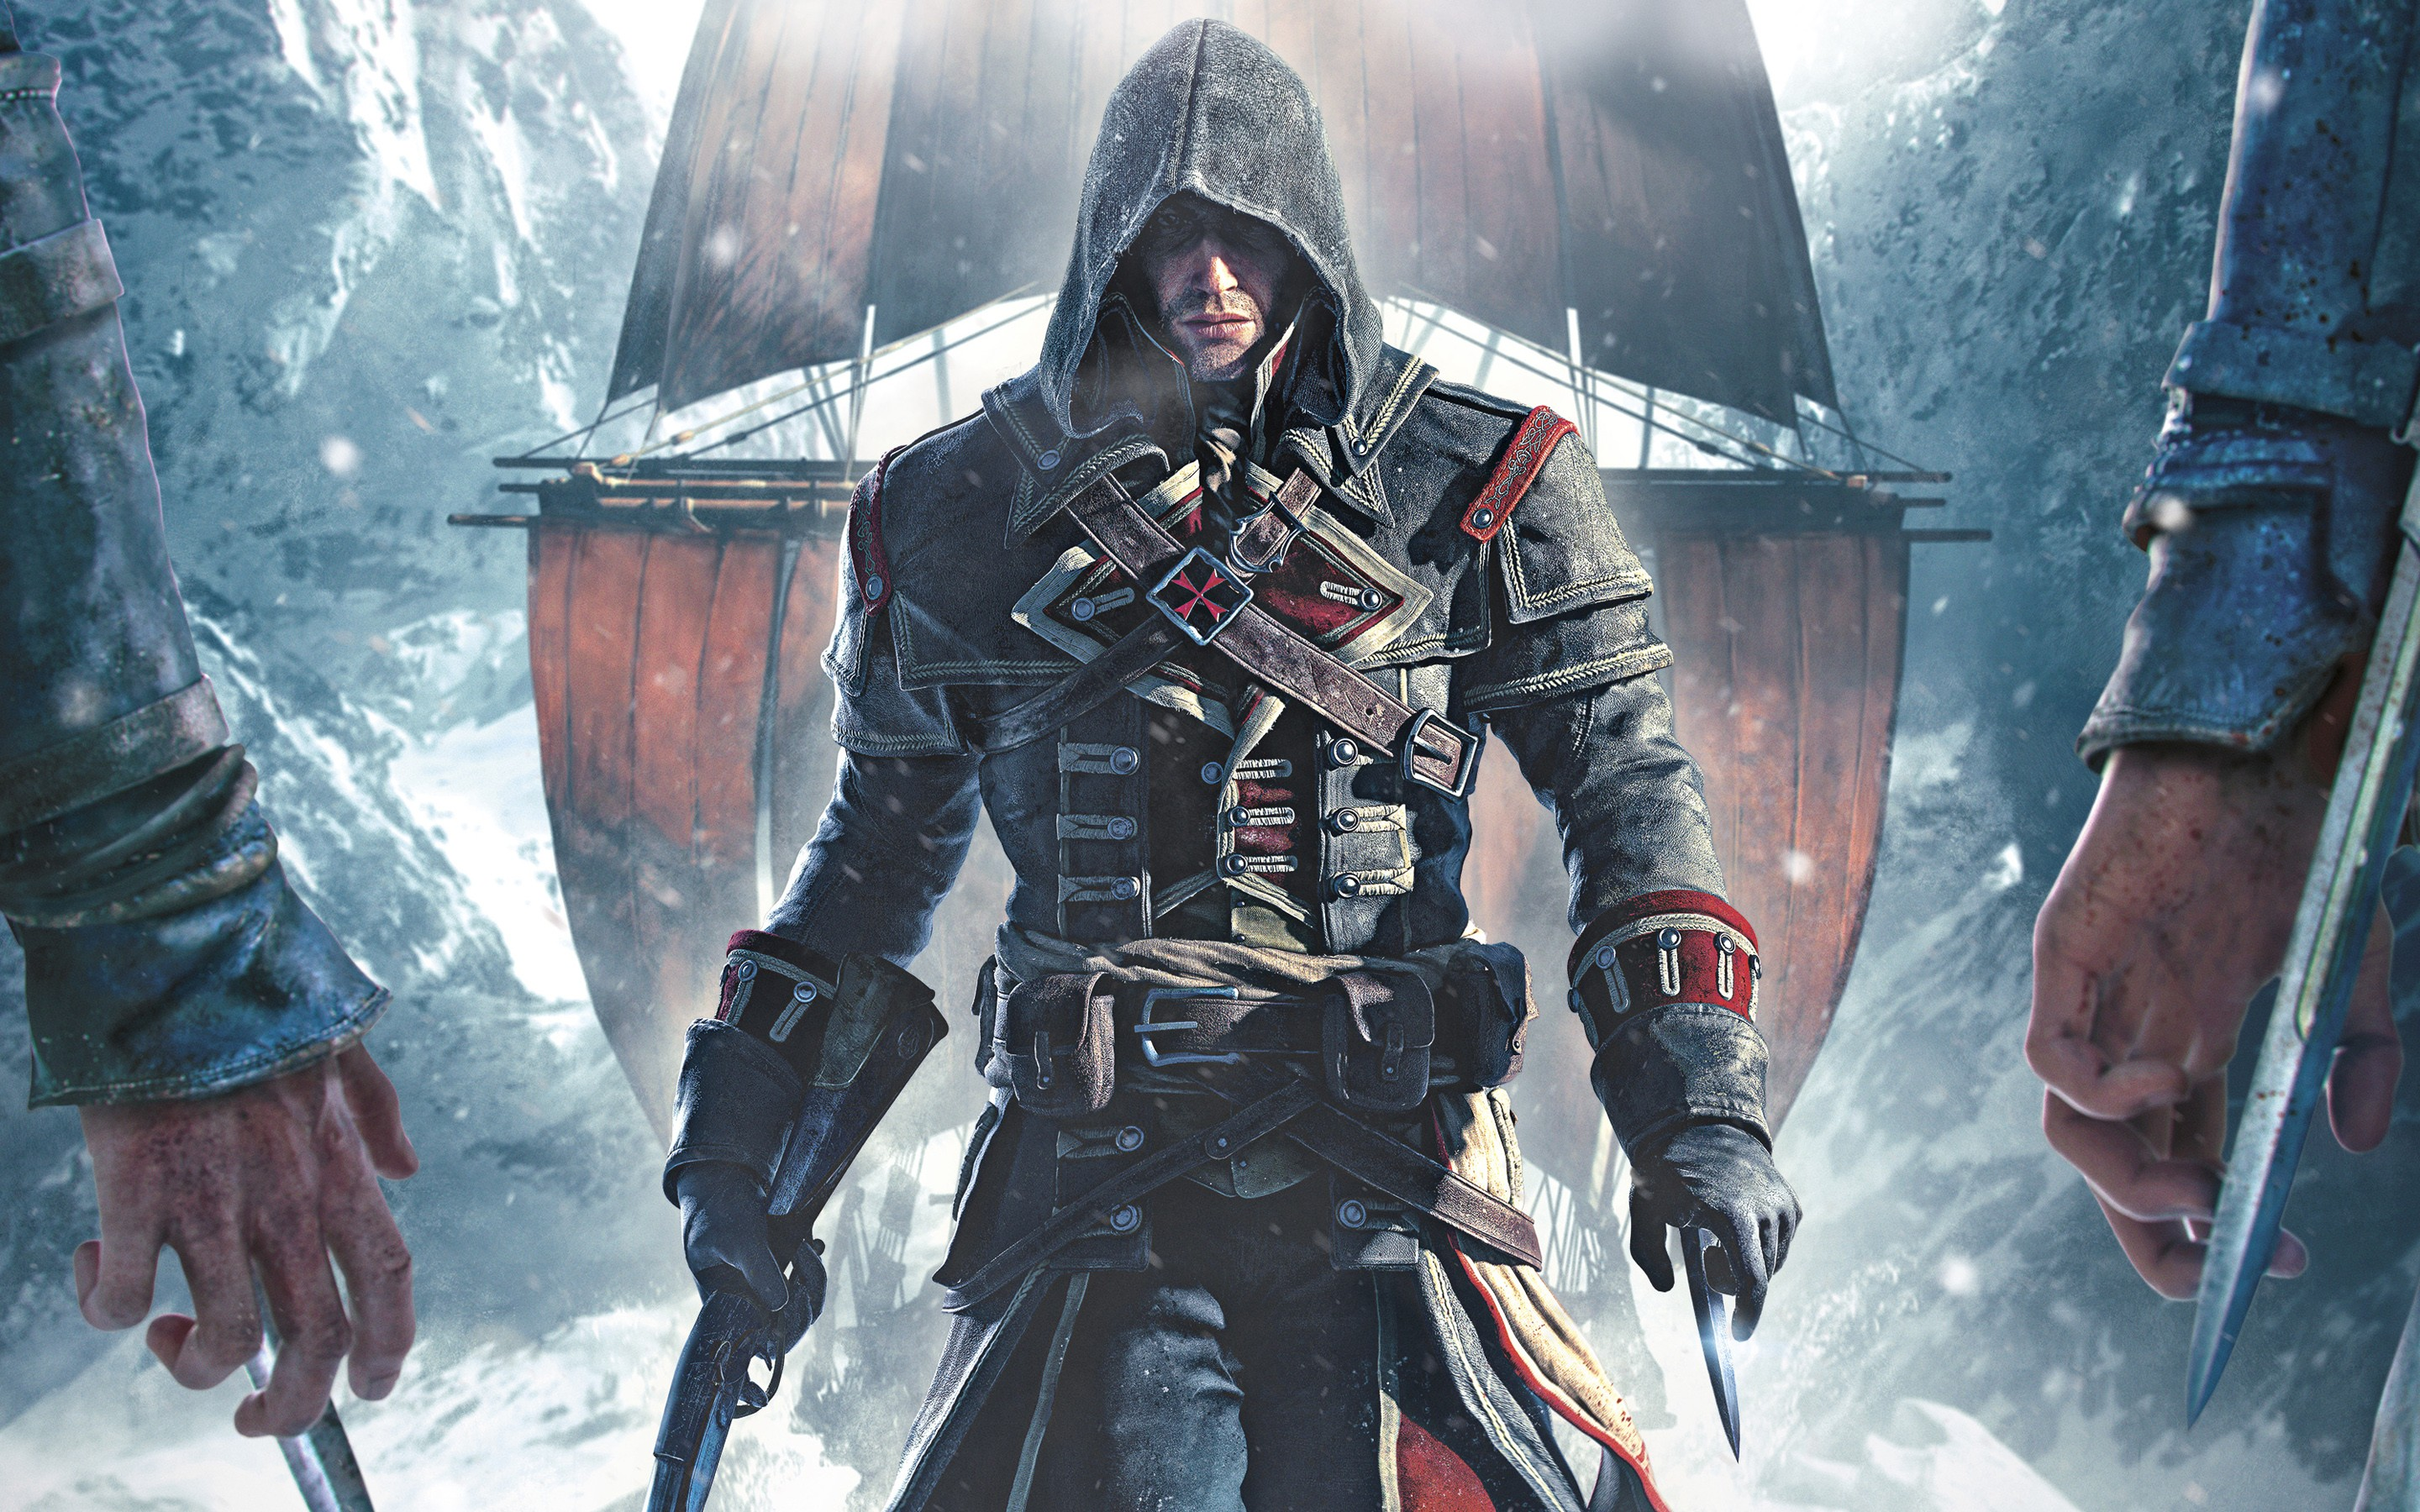 Assassins Creed Rogue Hd Games 4k Wallpapers Images Backgrounds